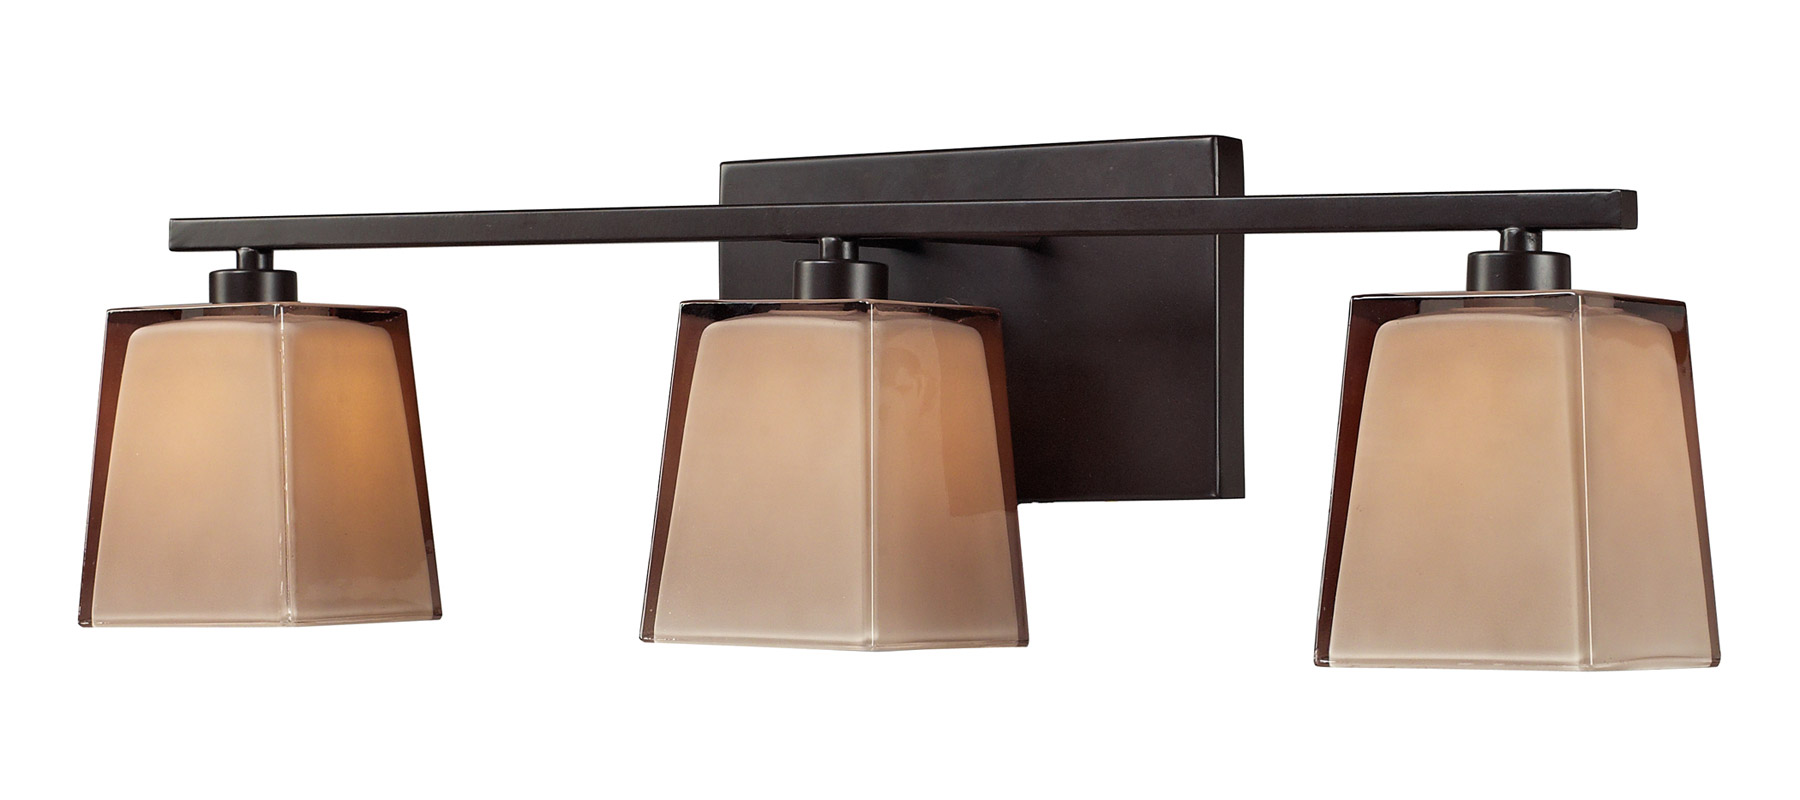 Image of: Ikea Bathroom Vanity Light